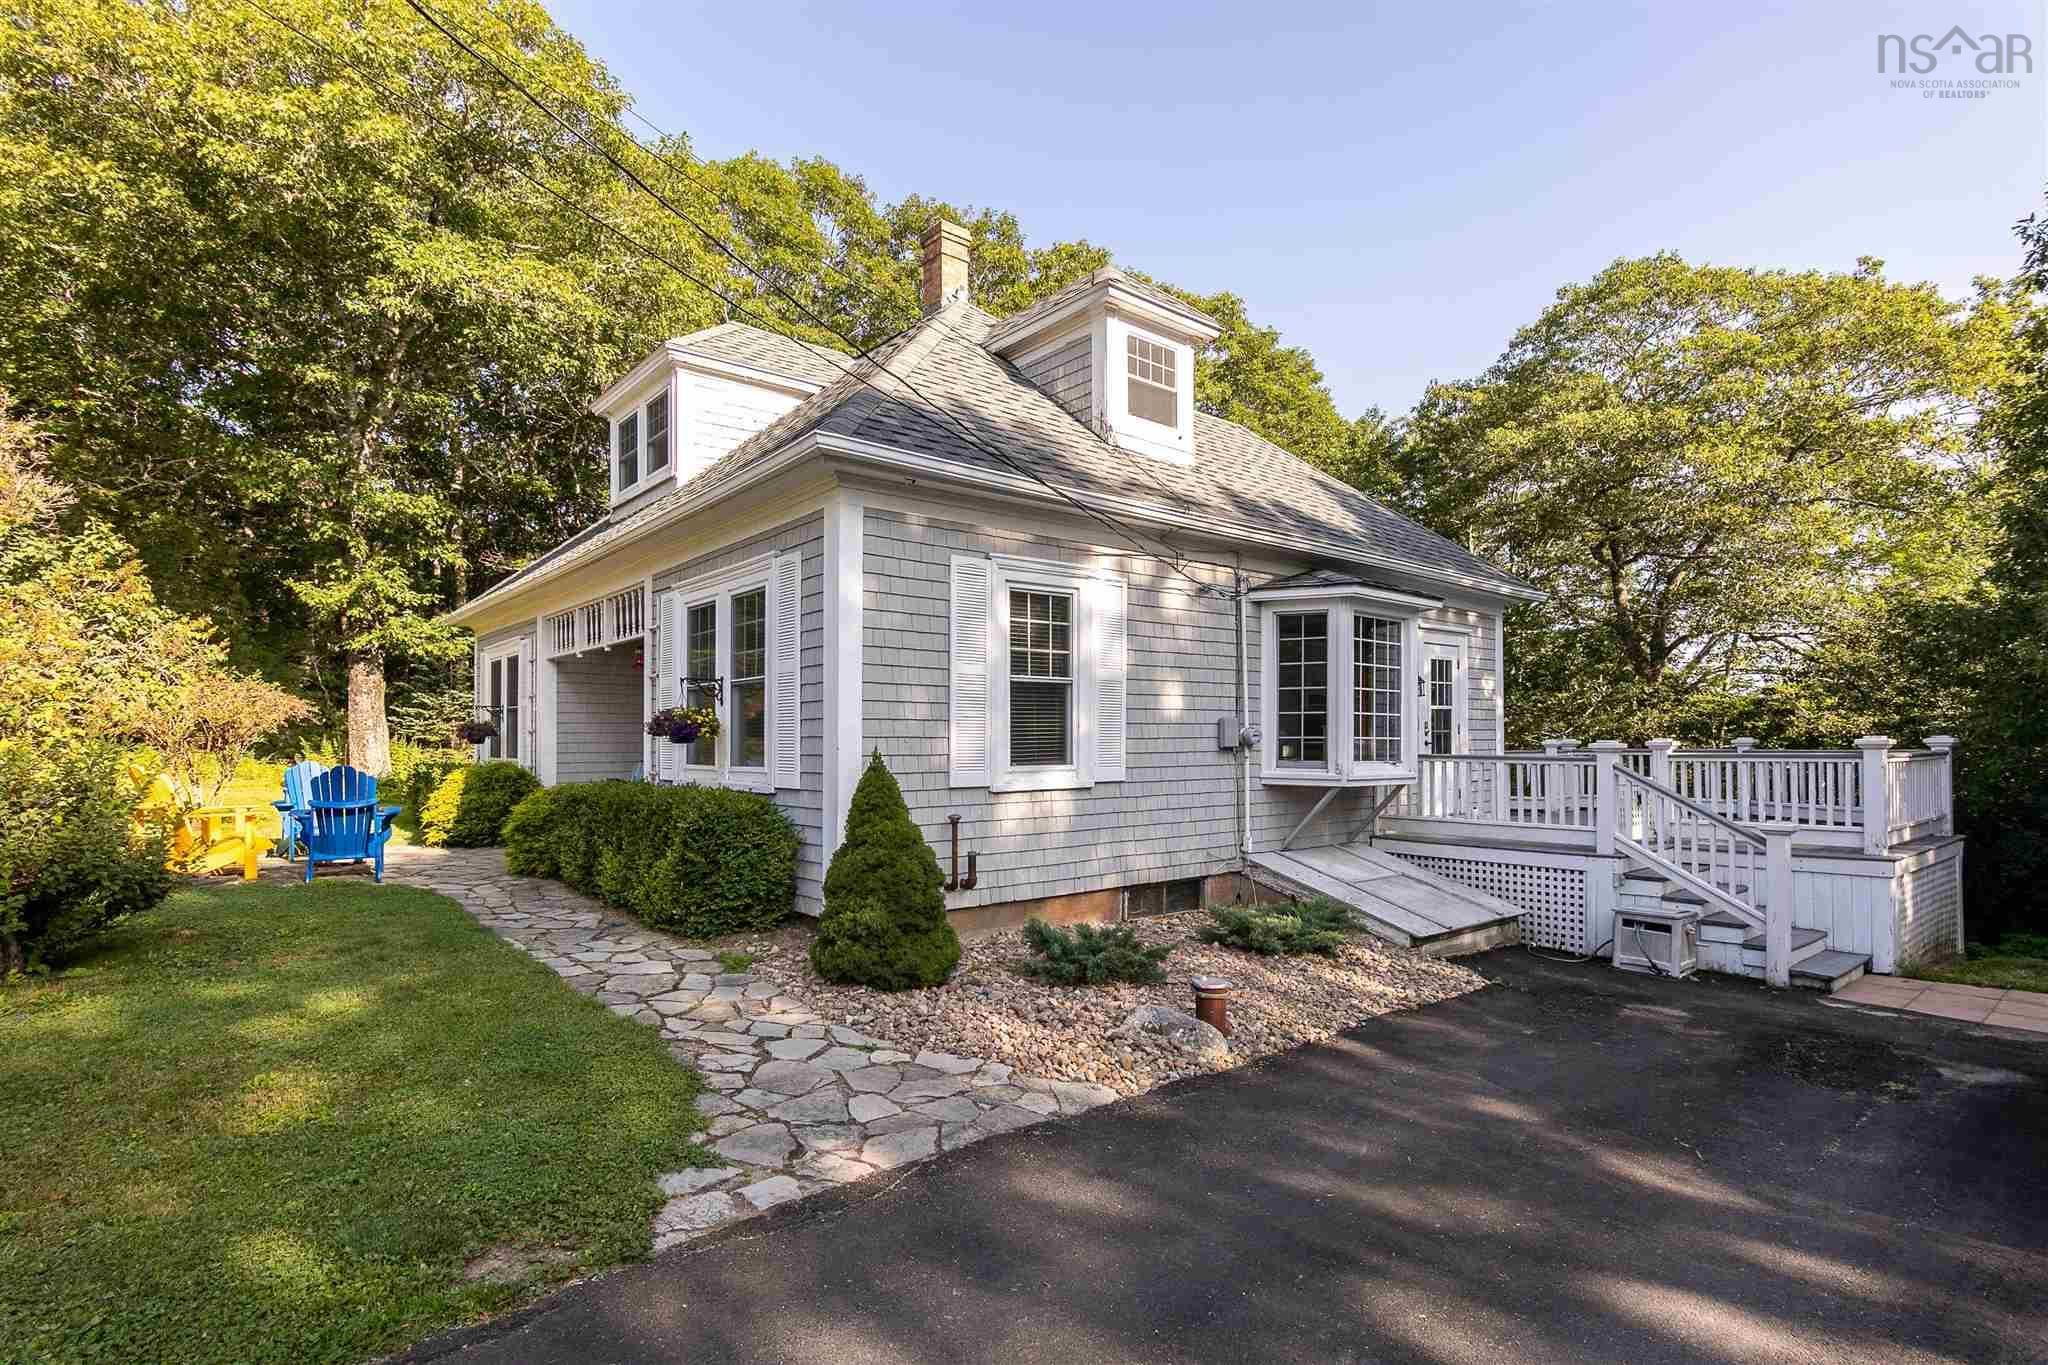 Main Photo: 135 Drews Hill Road in Petit Riviere: 405-Lunenburg County Residential for sale (South Shore)  : MLS®# 202121388